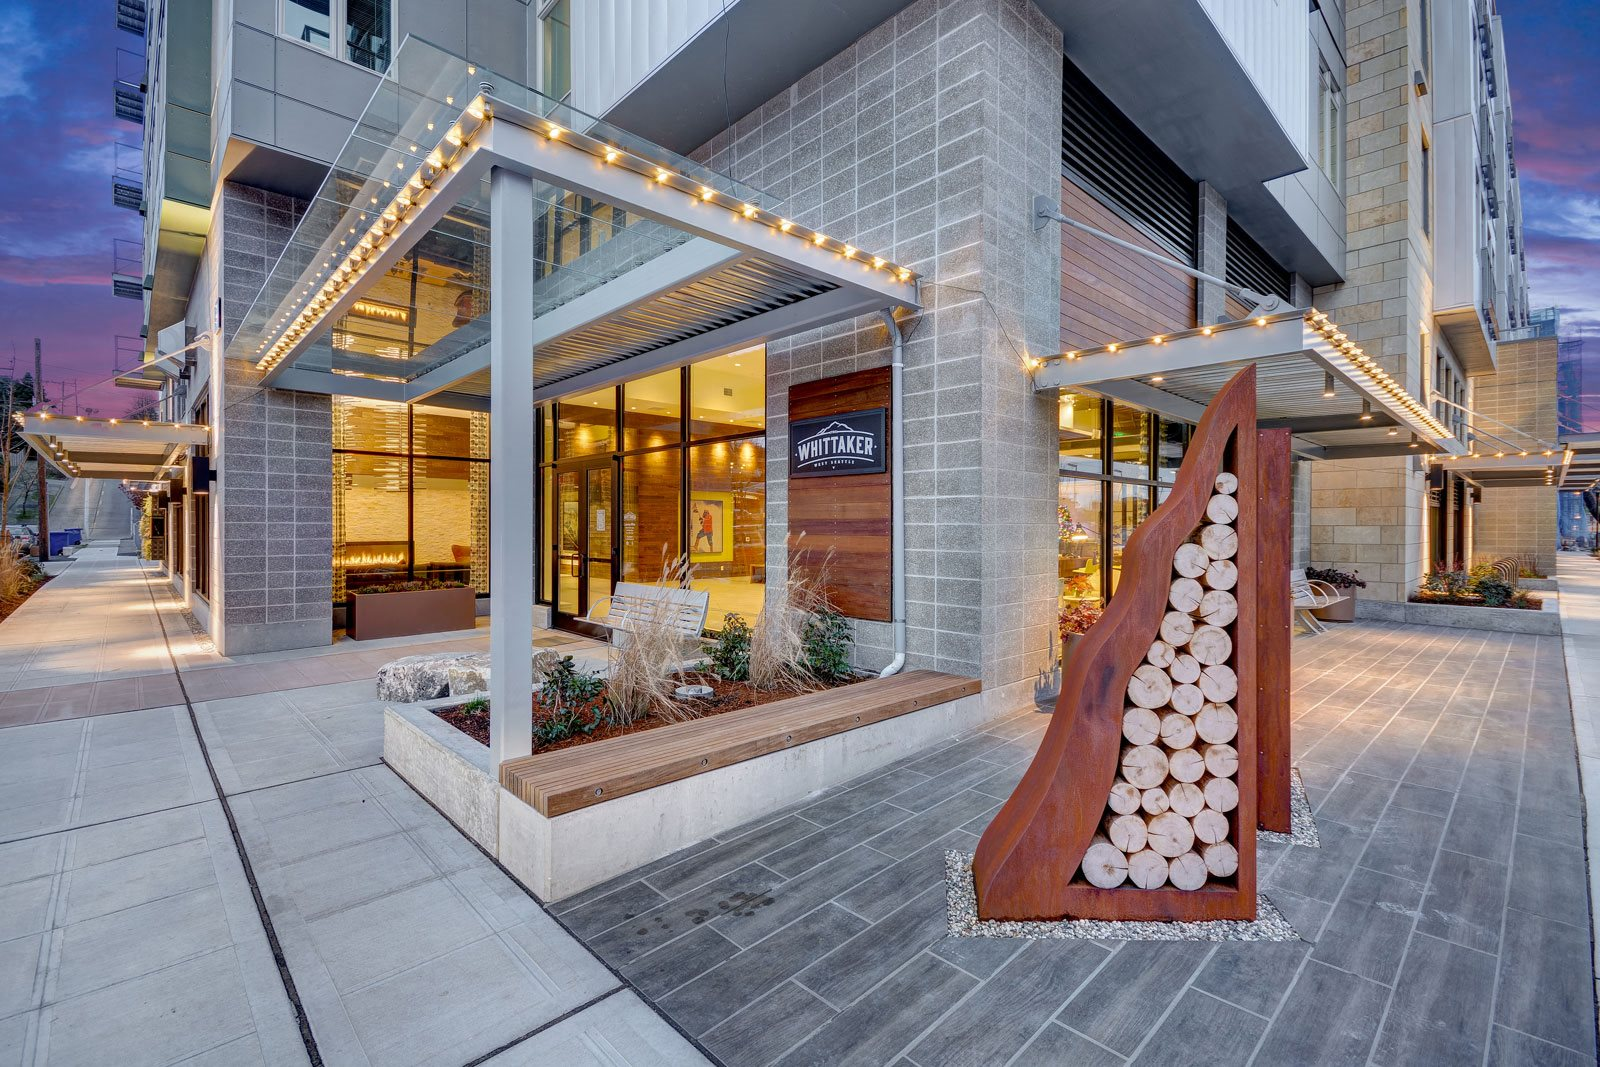 Amazing Outdoor Spaces at The Whittaker, Washington, 98116